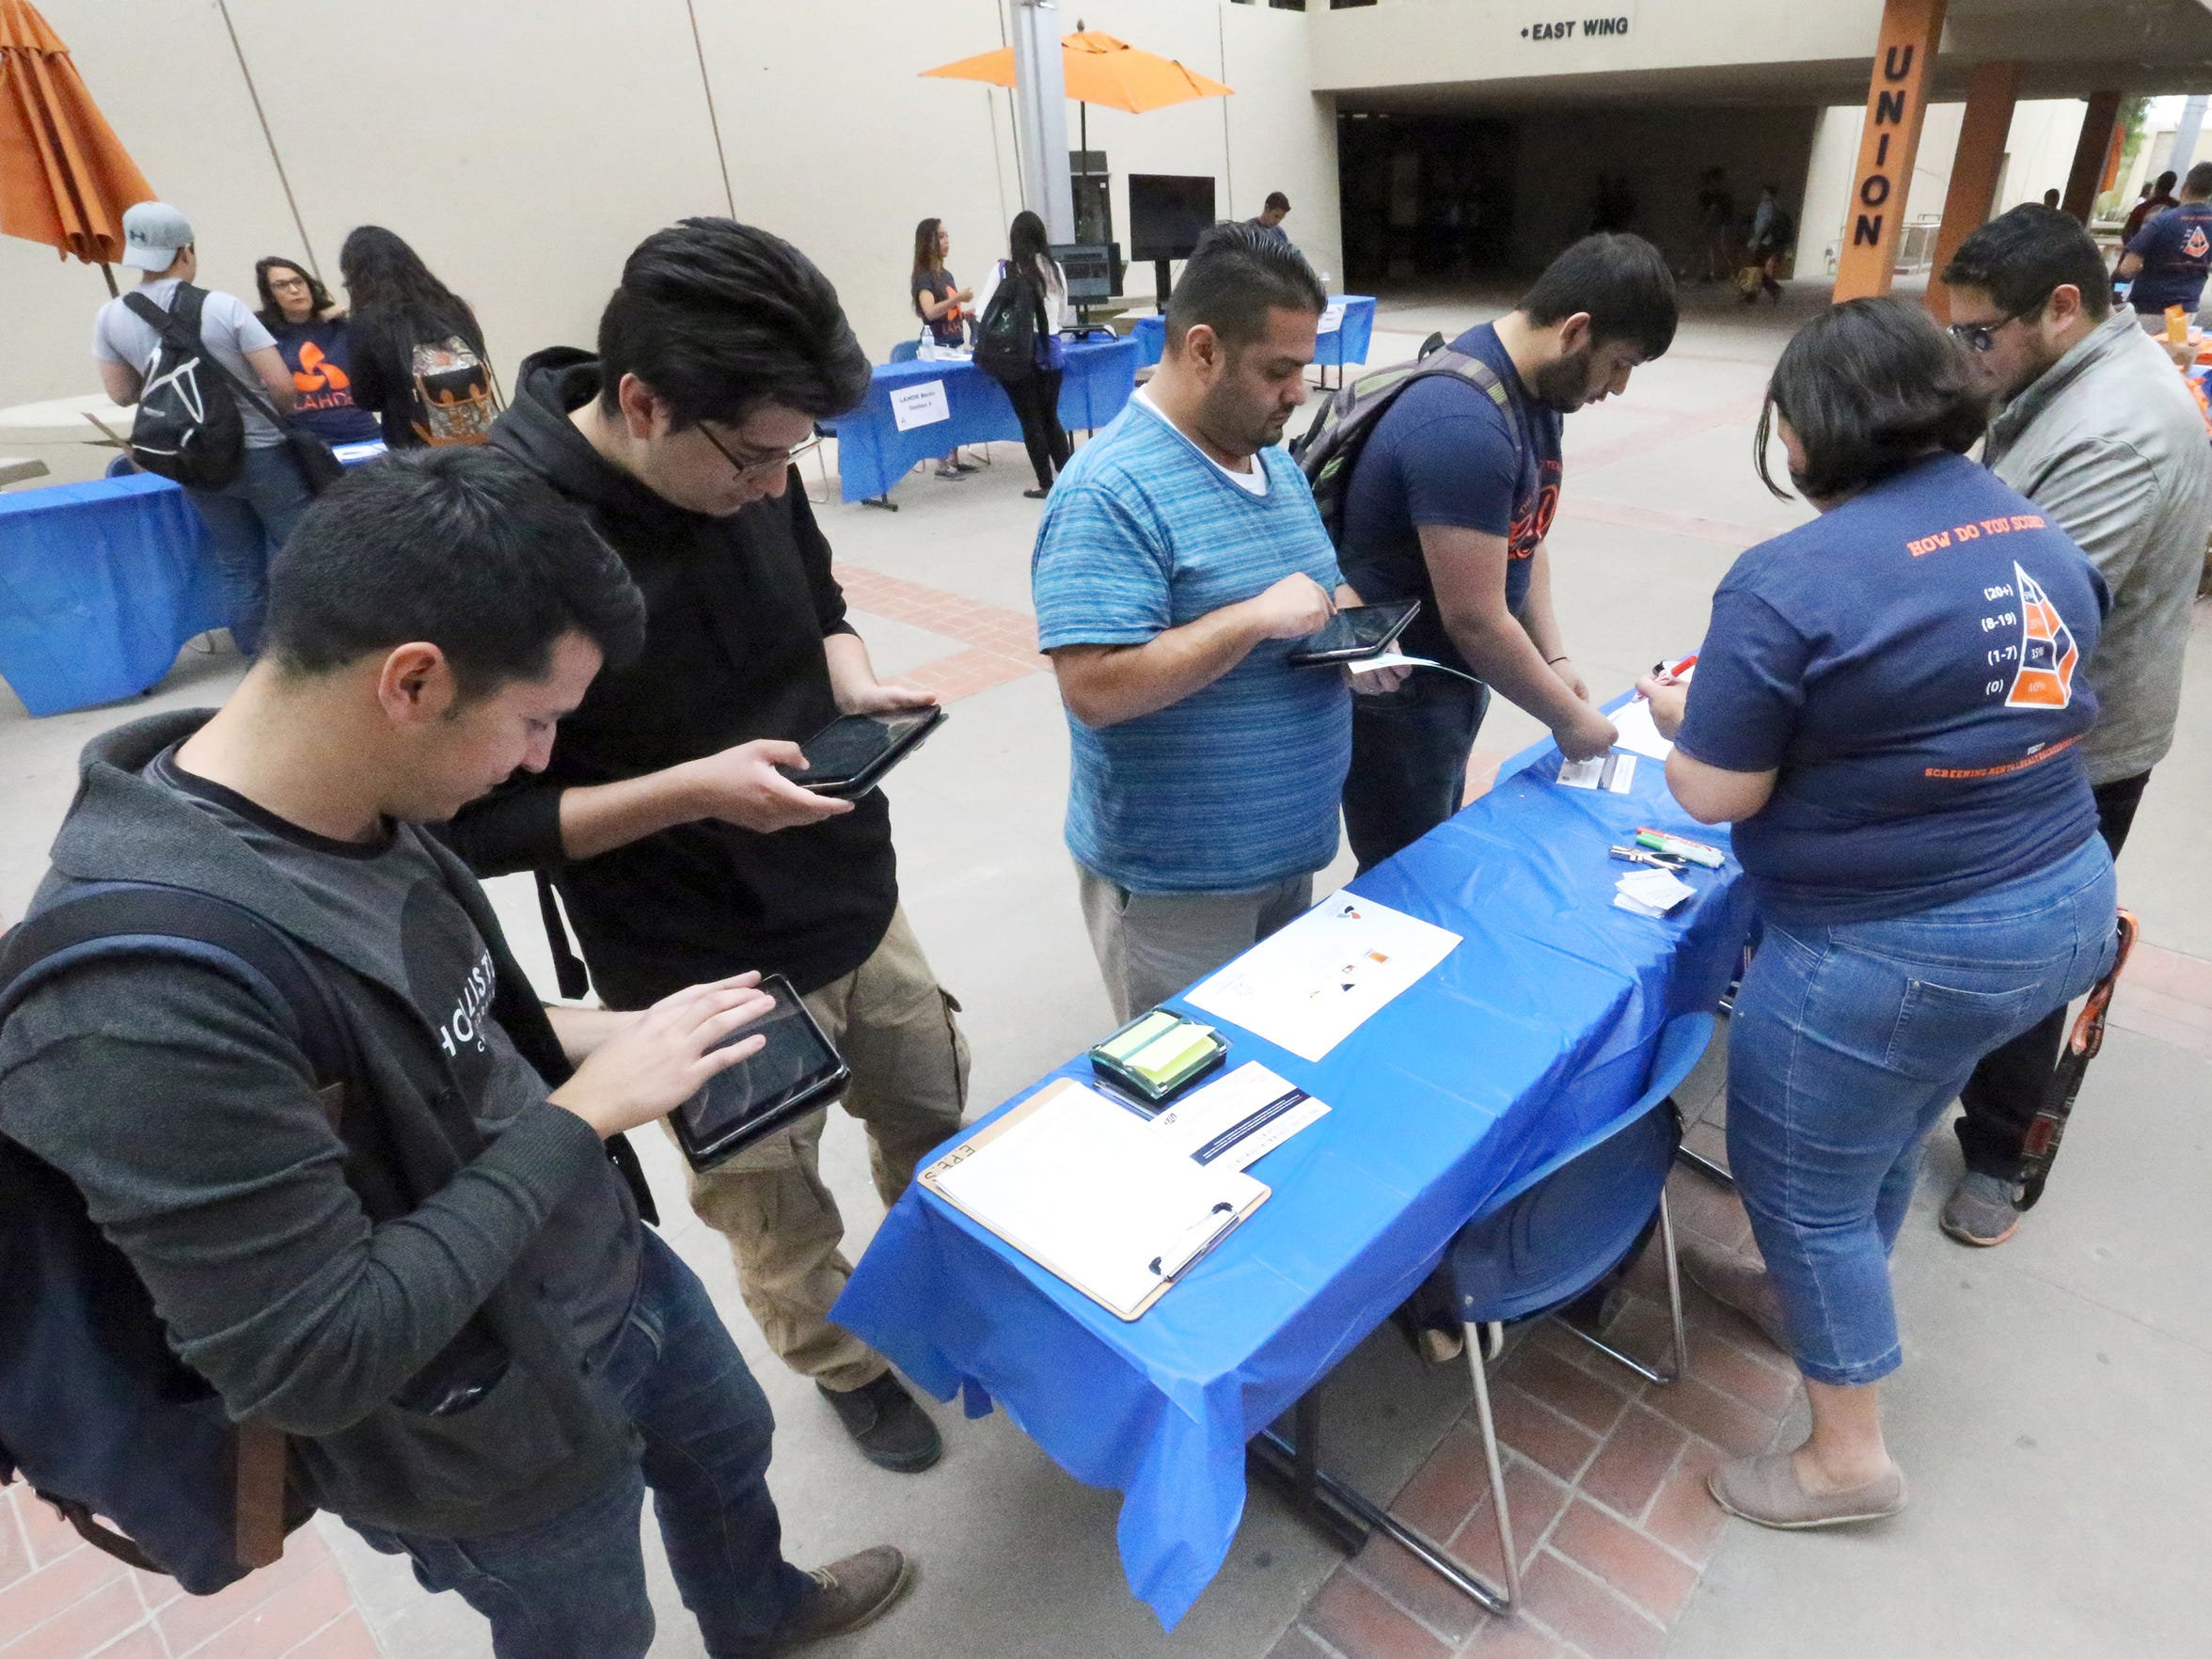 UTEP students fill out a questionnaire at a research initiative Thursday, April 7 in the courtyard of the Student Union building on campus. The research was being conducted by the Latinos Alcohol Health Disparities Research Center at UTEP.